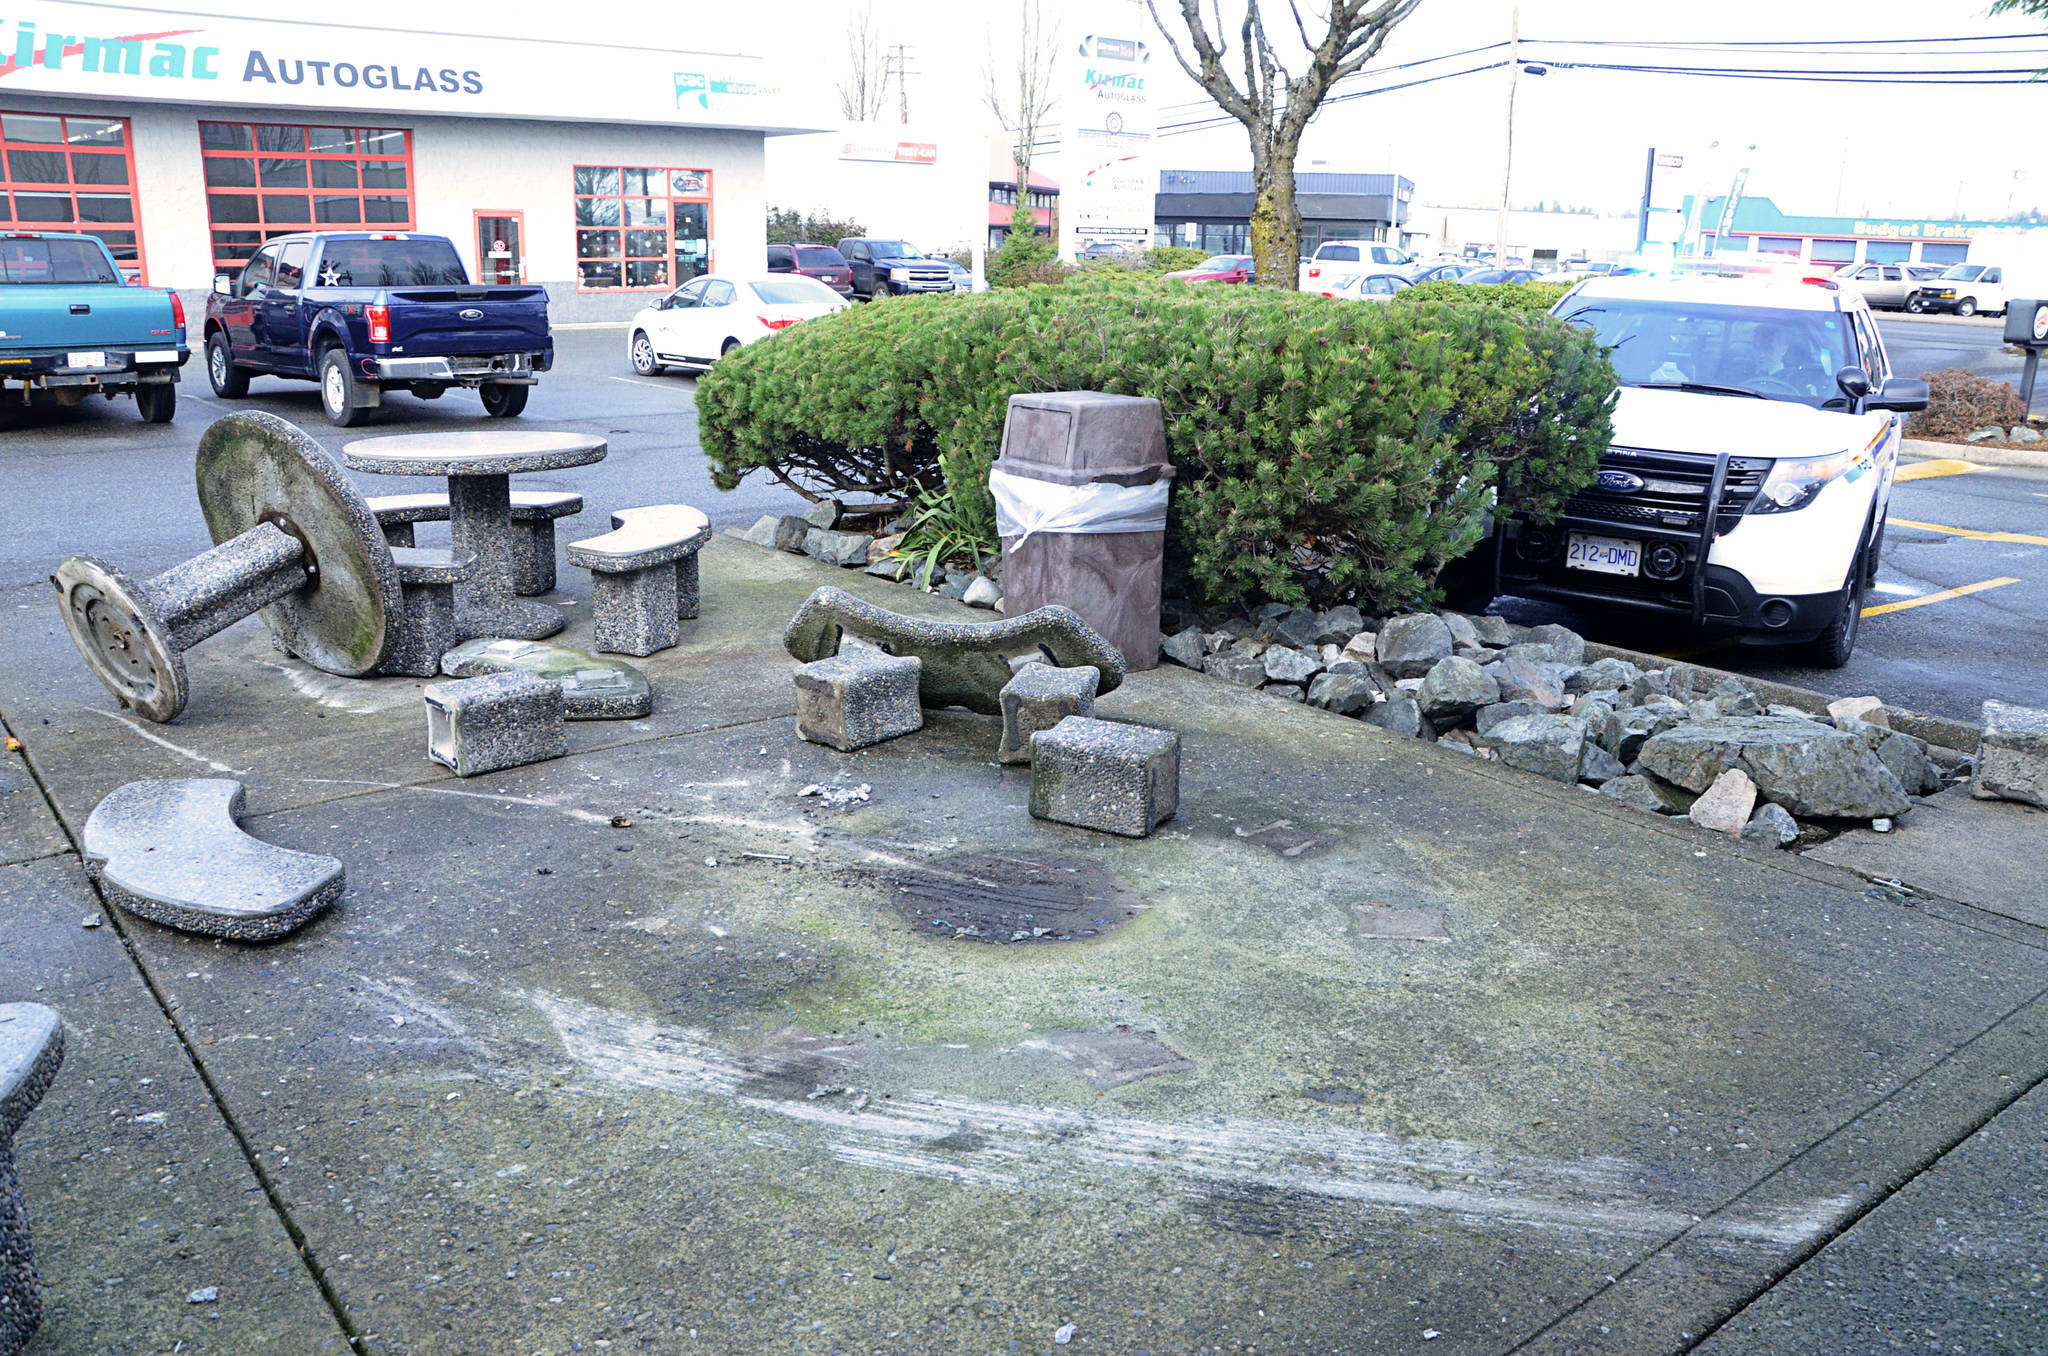 Concrete picnic tables were tossed around at Burger King on 200th Street on Tuesday morning. (Matthew Claxton/Langley Advance)